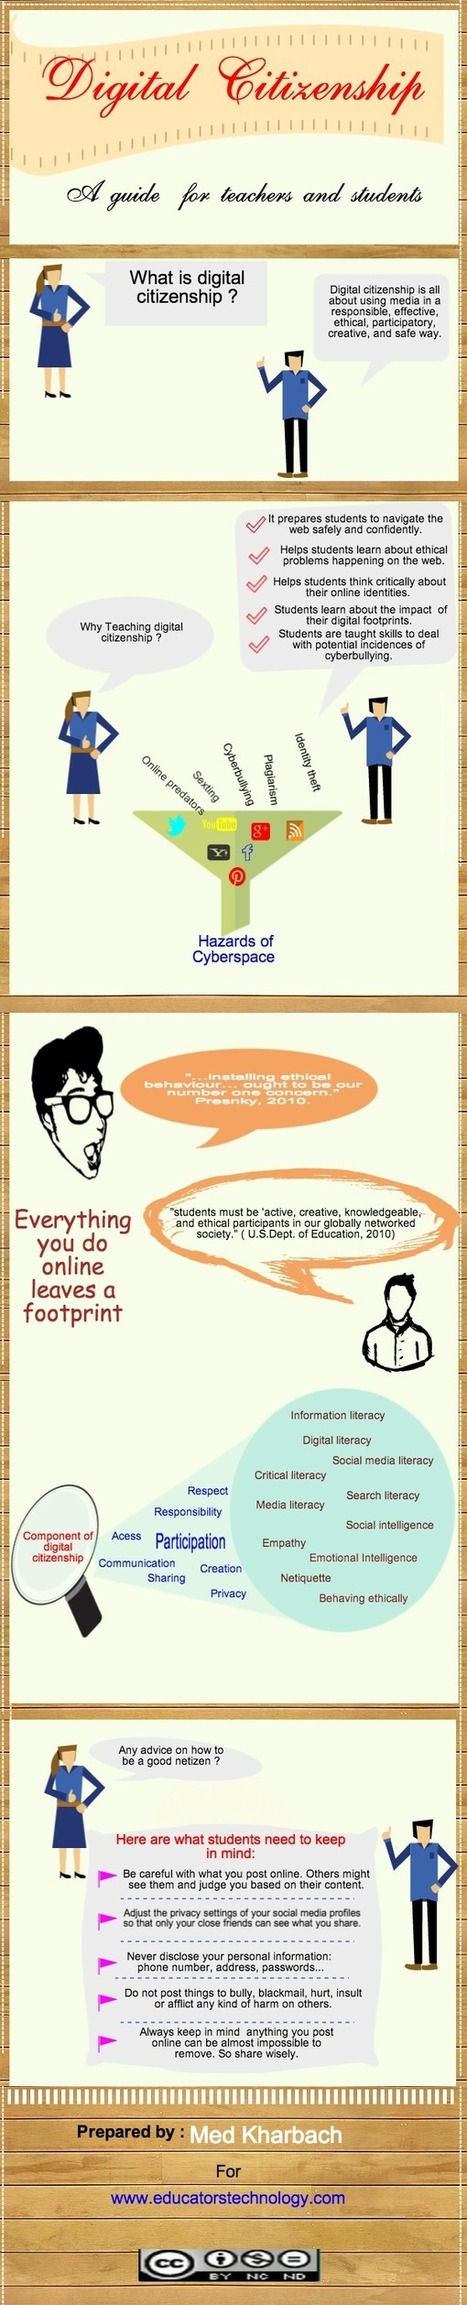 Digital Citizenship Explained for Teachers via @medkh9 | iGeneration - 21st Century Education (Pedagogy & Digital Innovation) | Edtech PK-12 | Scoop.it